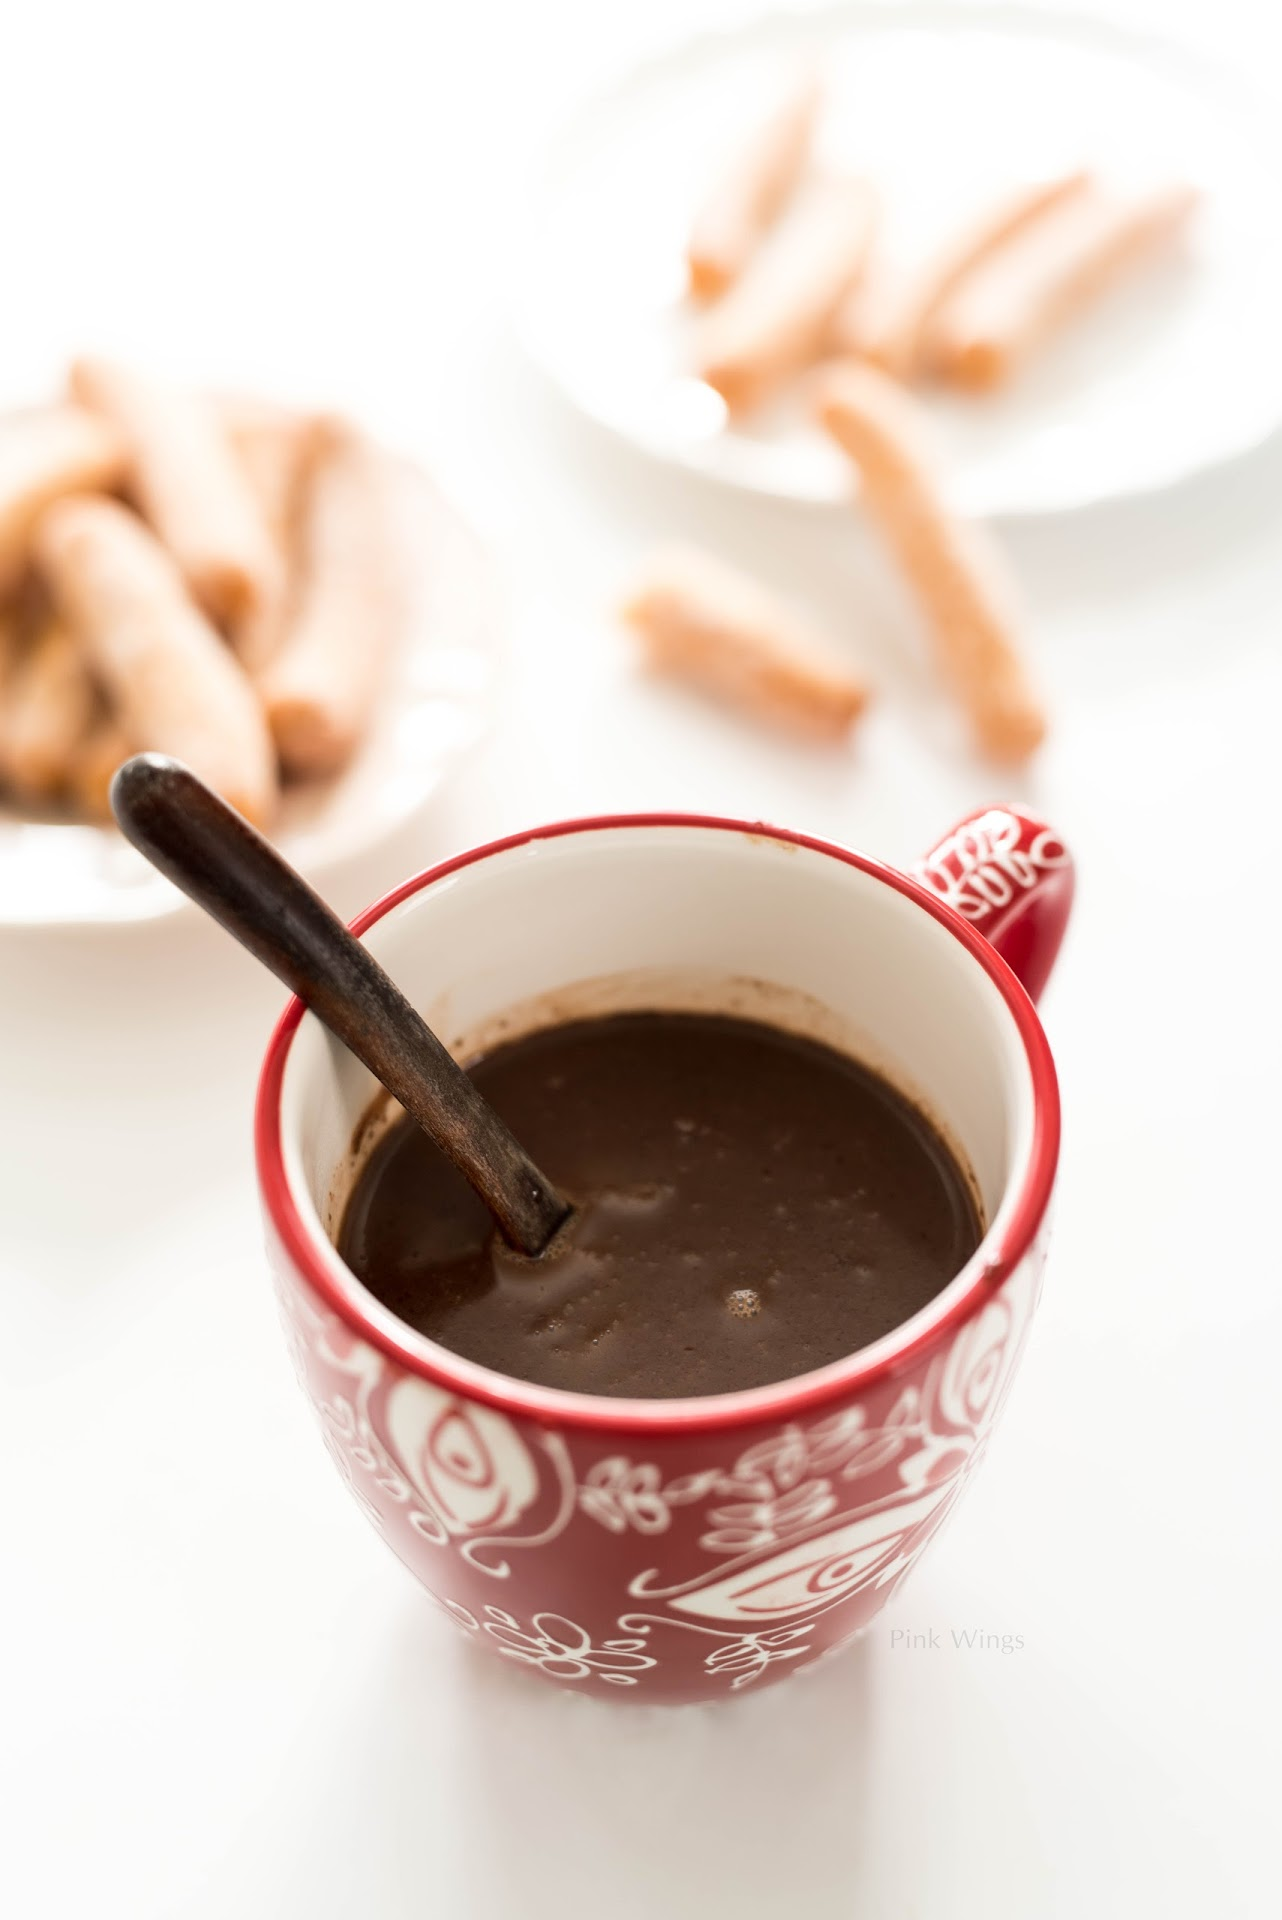 European hot chocolate, cocoa, churro recipe, snacks for hot chocolate, hot chocolate bar ideas, european party ideas, winter food, holiday treats, christmas, dairy-free chocolate, dairy-free recipes, dairy-free hot chocolate, a2 milk review, san francisco food blogger, bay area, lds mormon